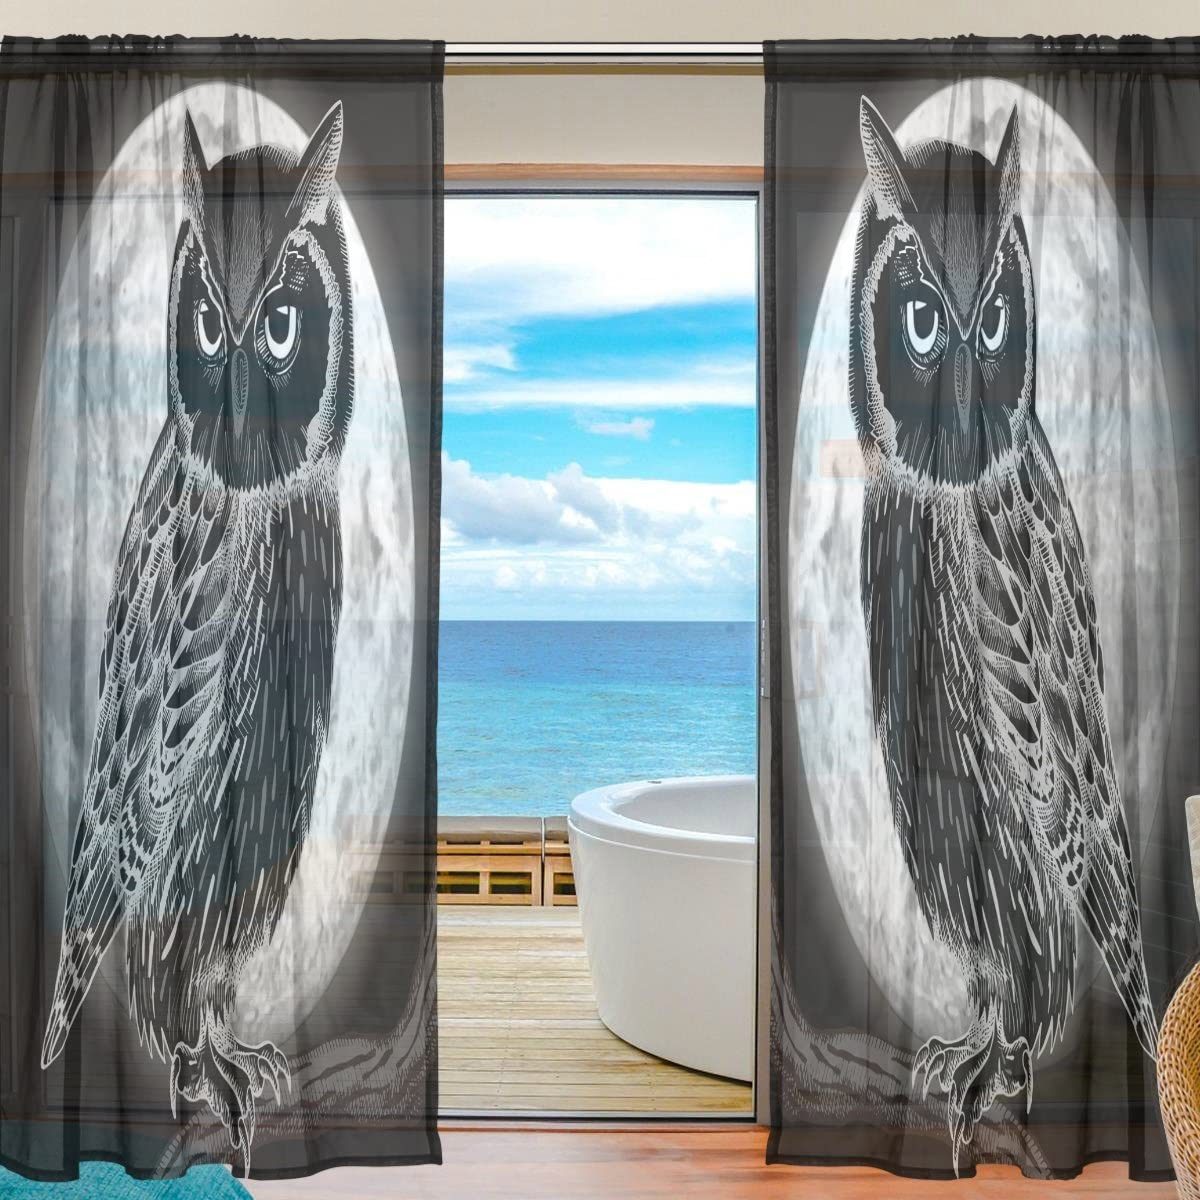 SEULIFE Window Sheer Curtain Halloween Owl Animal Moon Voile Curtain Drapes for Door Kitchen Living Room Bedroom 55x84 inches 2 Panels